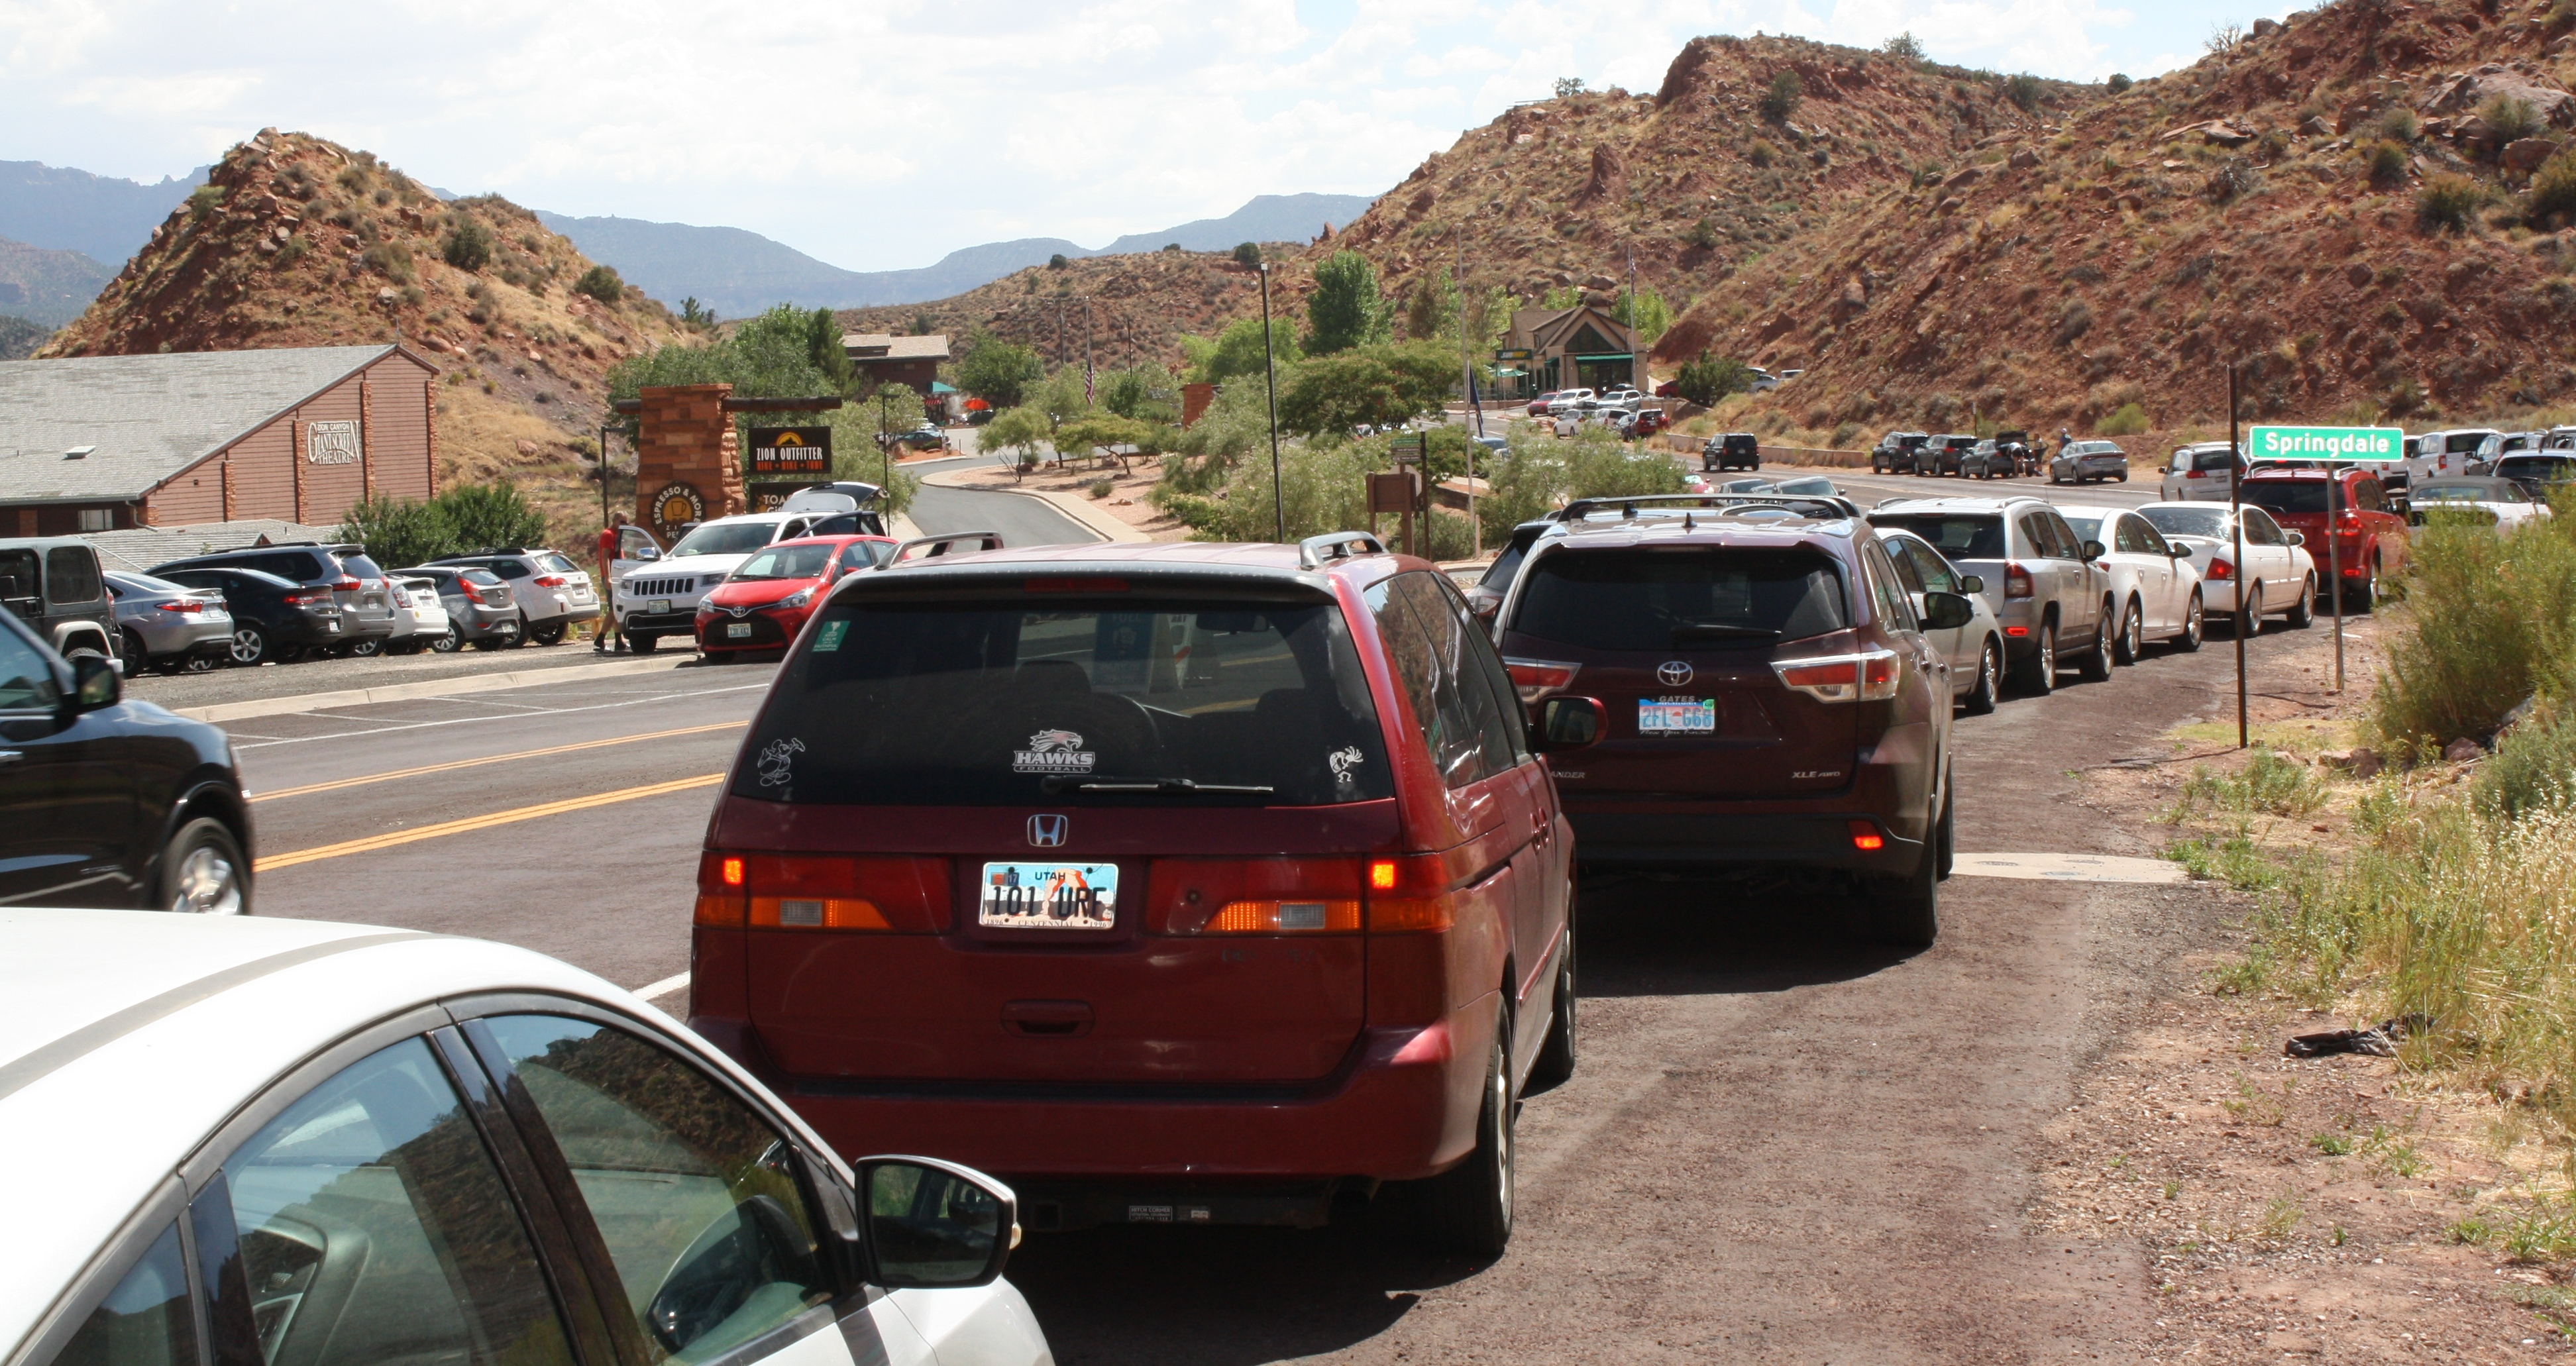 Cars lining the street near the Zion Canyon Giant Screen Theatre, just south of the south entrance, Zion National Park, Utah, July 20, 2016 | Photo by Reuben Wadsworth, St. George News